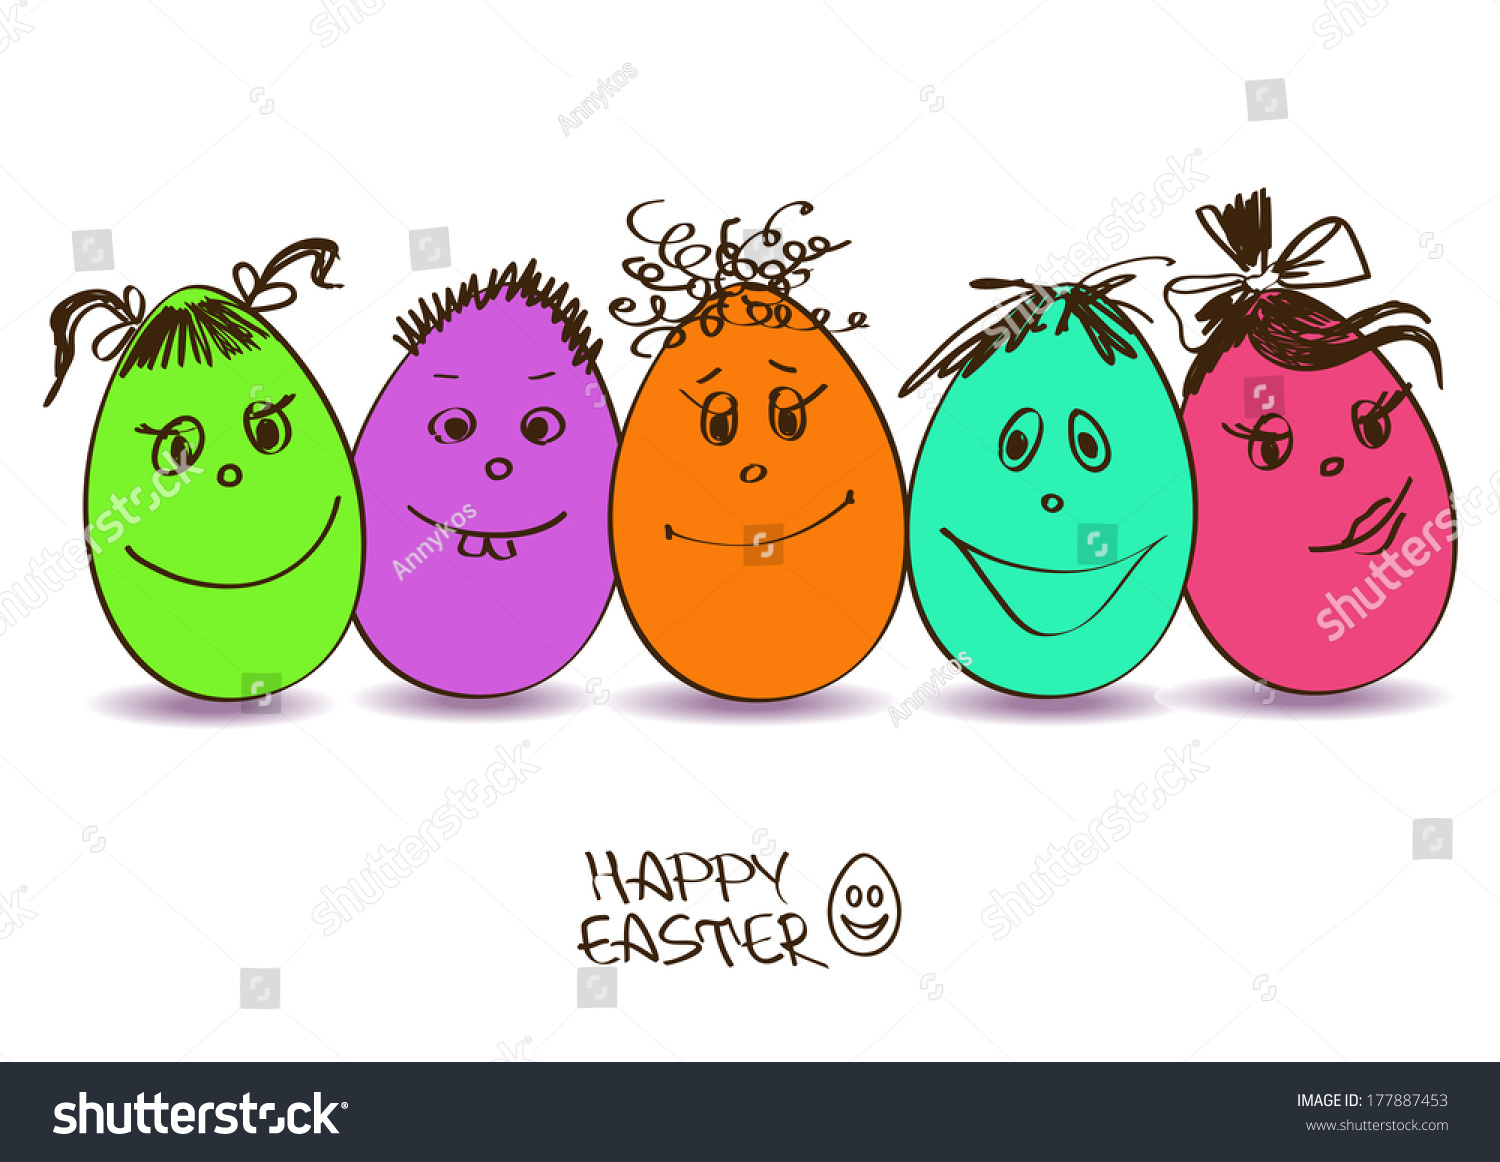 Easter greeting card funny colorful cartoon stock vector 177887453 easter greeting card funny colorful cartoon stock vector 177887453 shutterstock kristyandbryce Choice Image